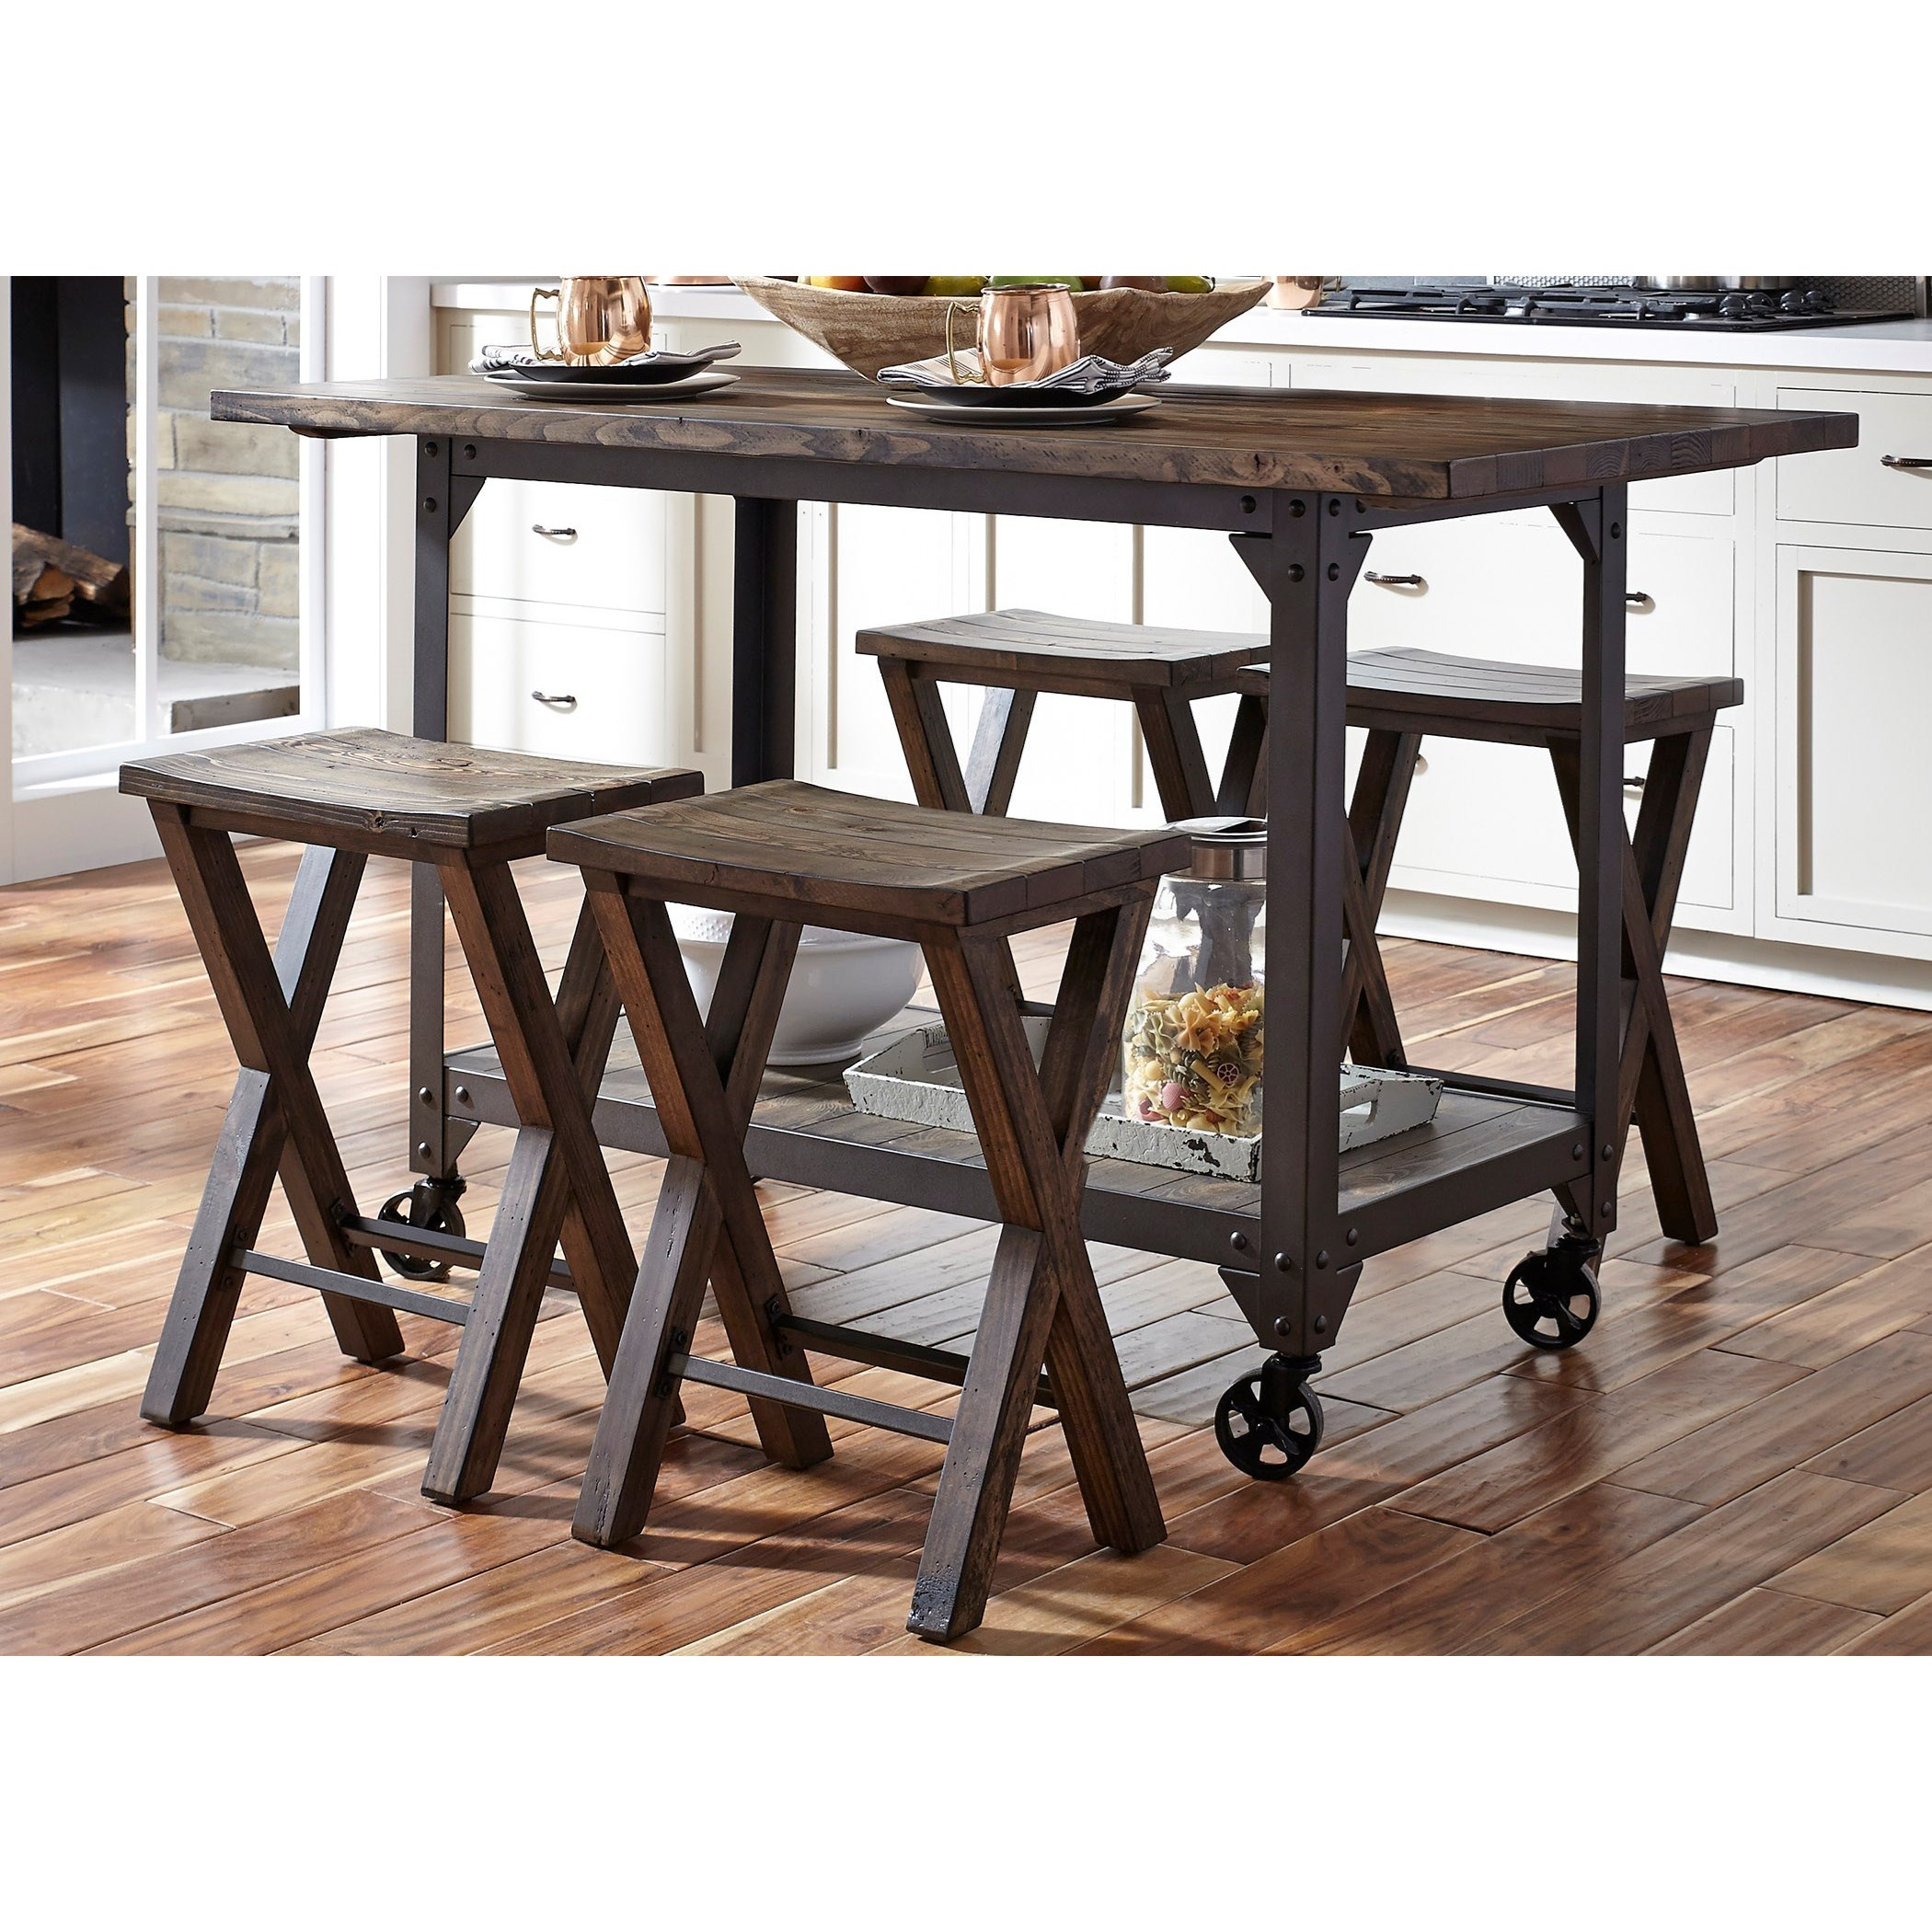 Industrial Counter Height Bar Stools Industrial Kitchen Island And Counter Height Stool Set By